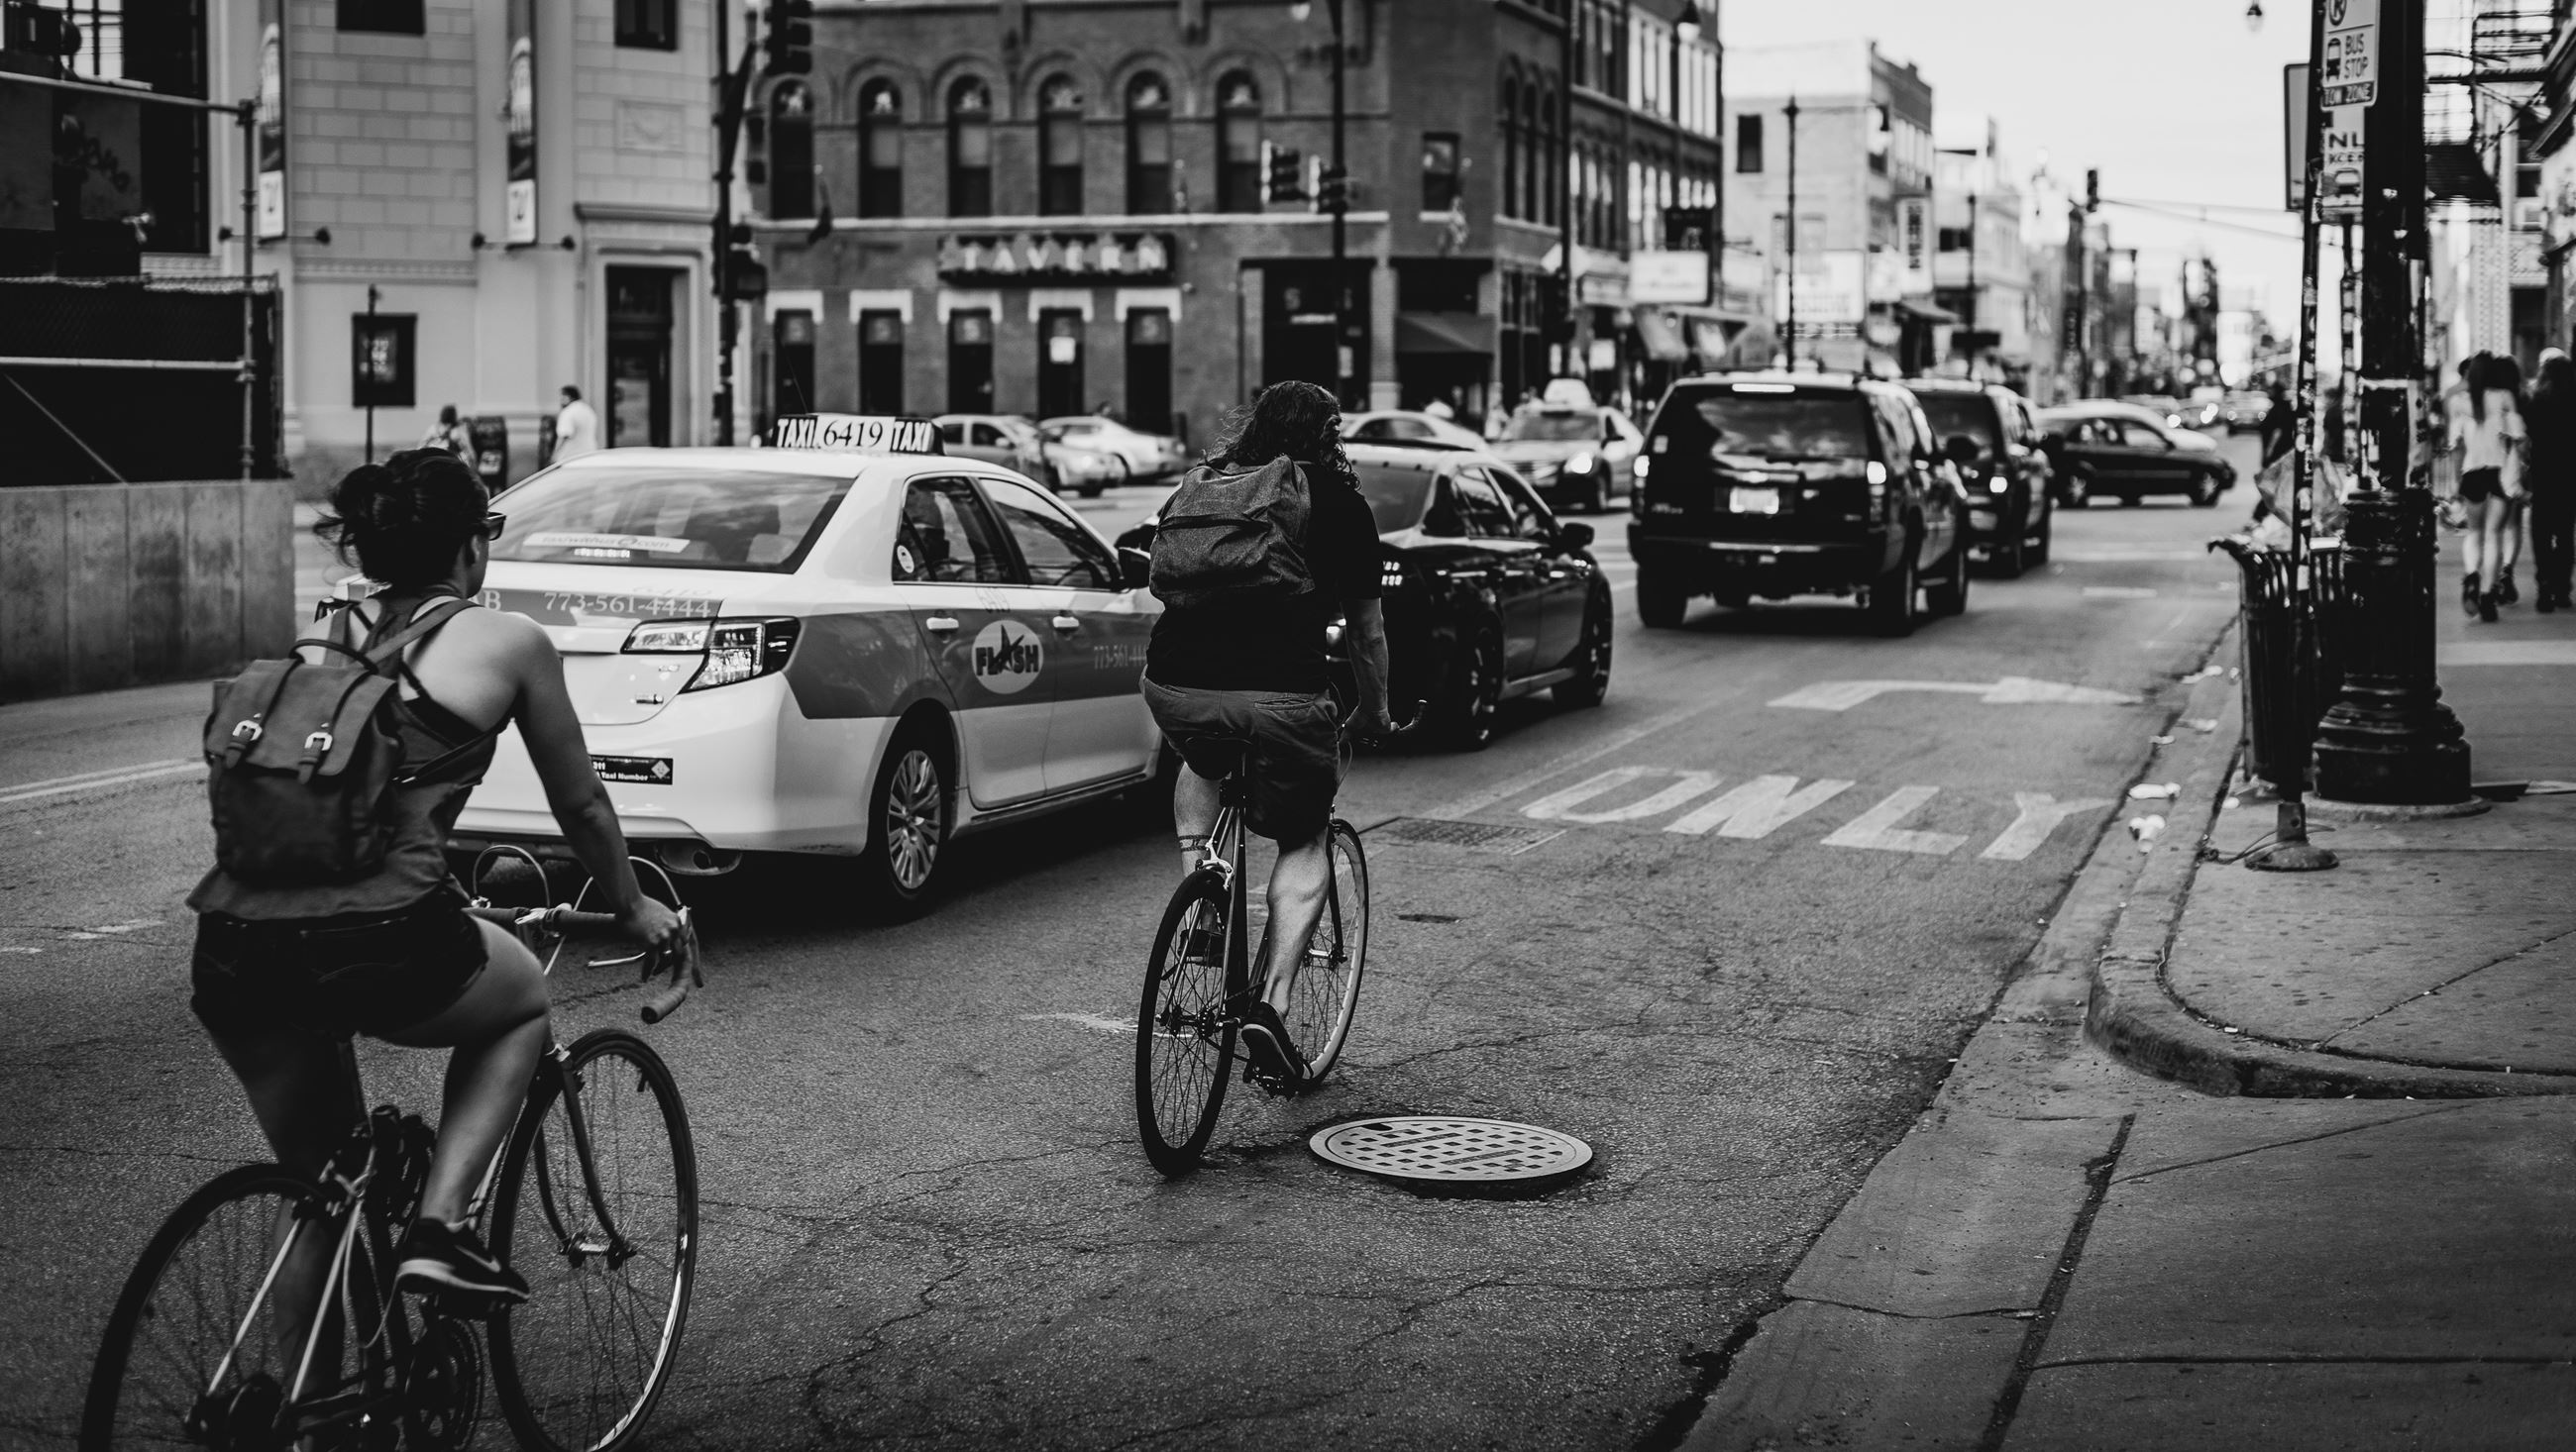 1.5_bike_cars_Photo by Adrian Williams on Unsplash